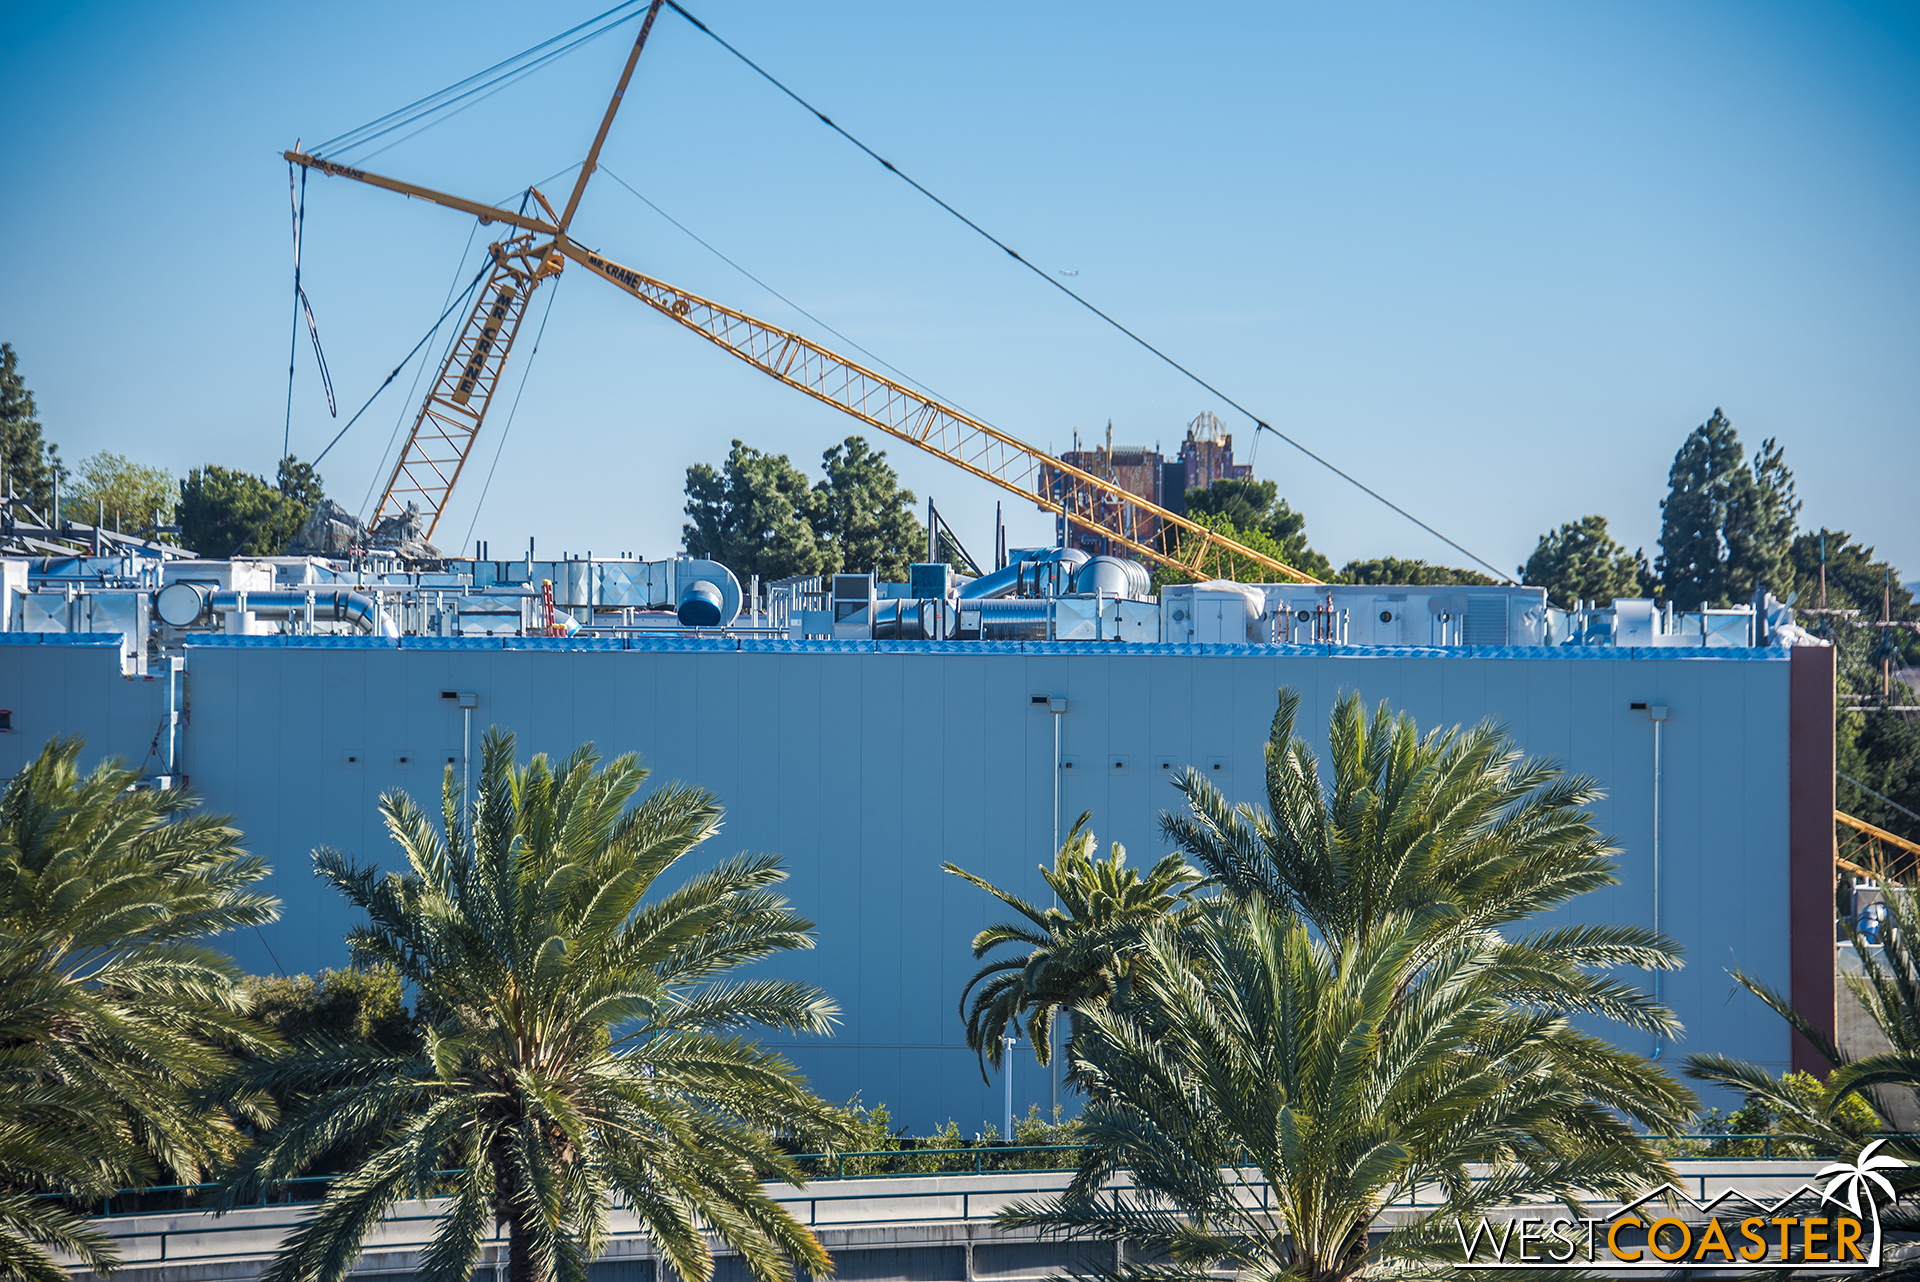 The cranes were down on Sunday, due to high winds.